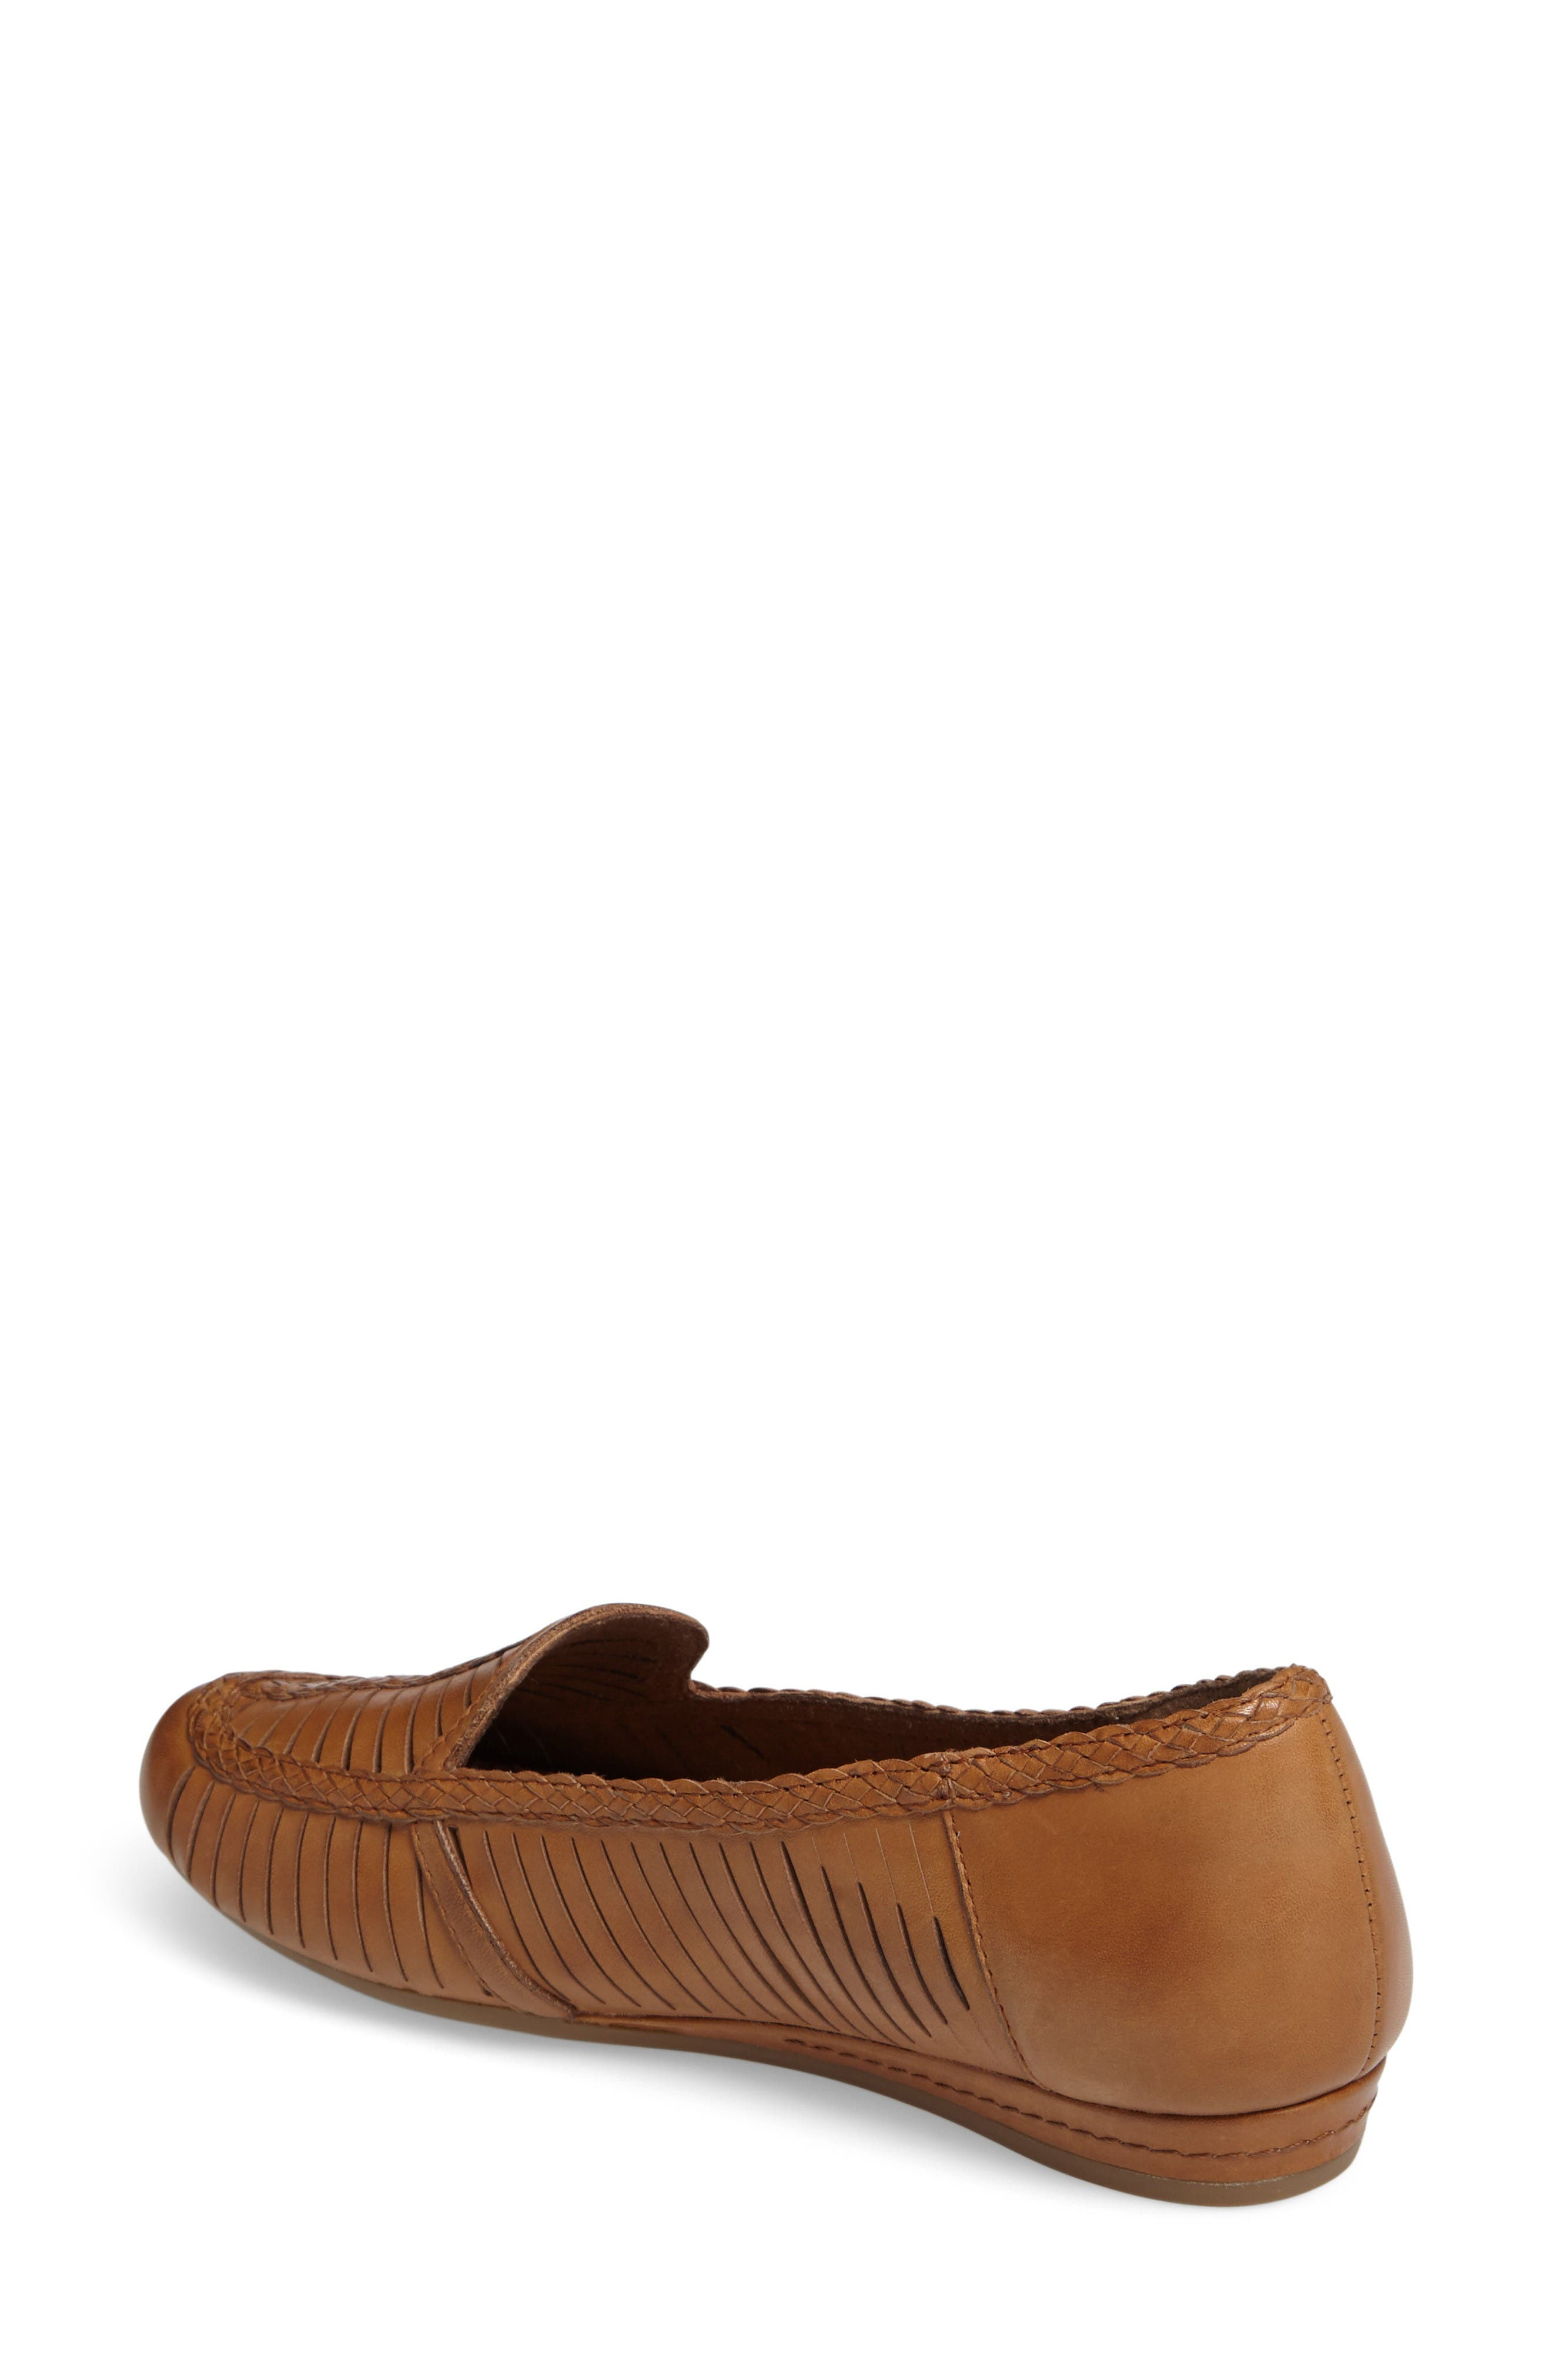 Galway Loafer,                             Alternate thumbnail 2, color,                             Tan Multi Leather